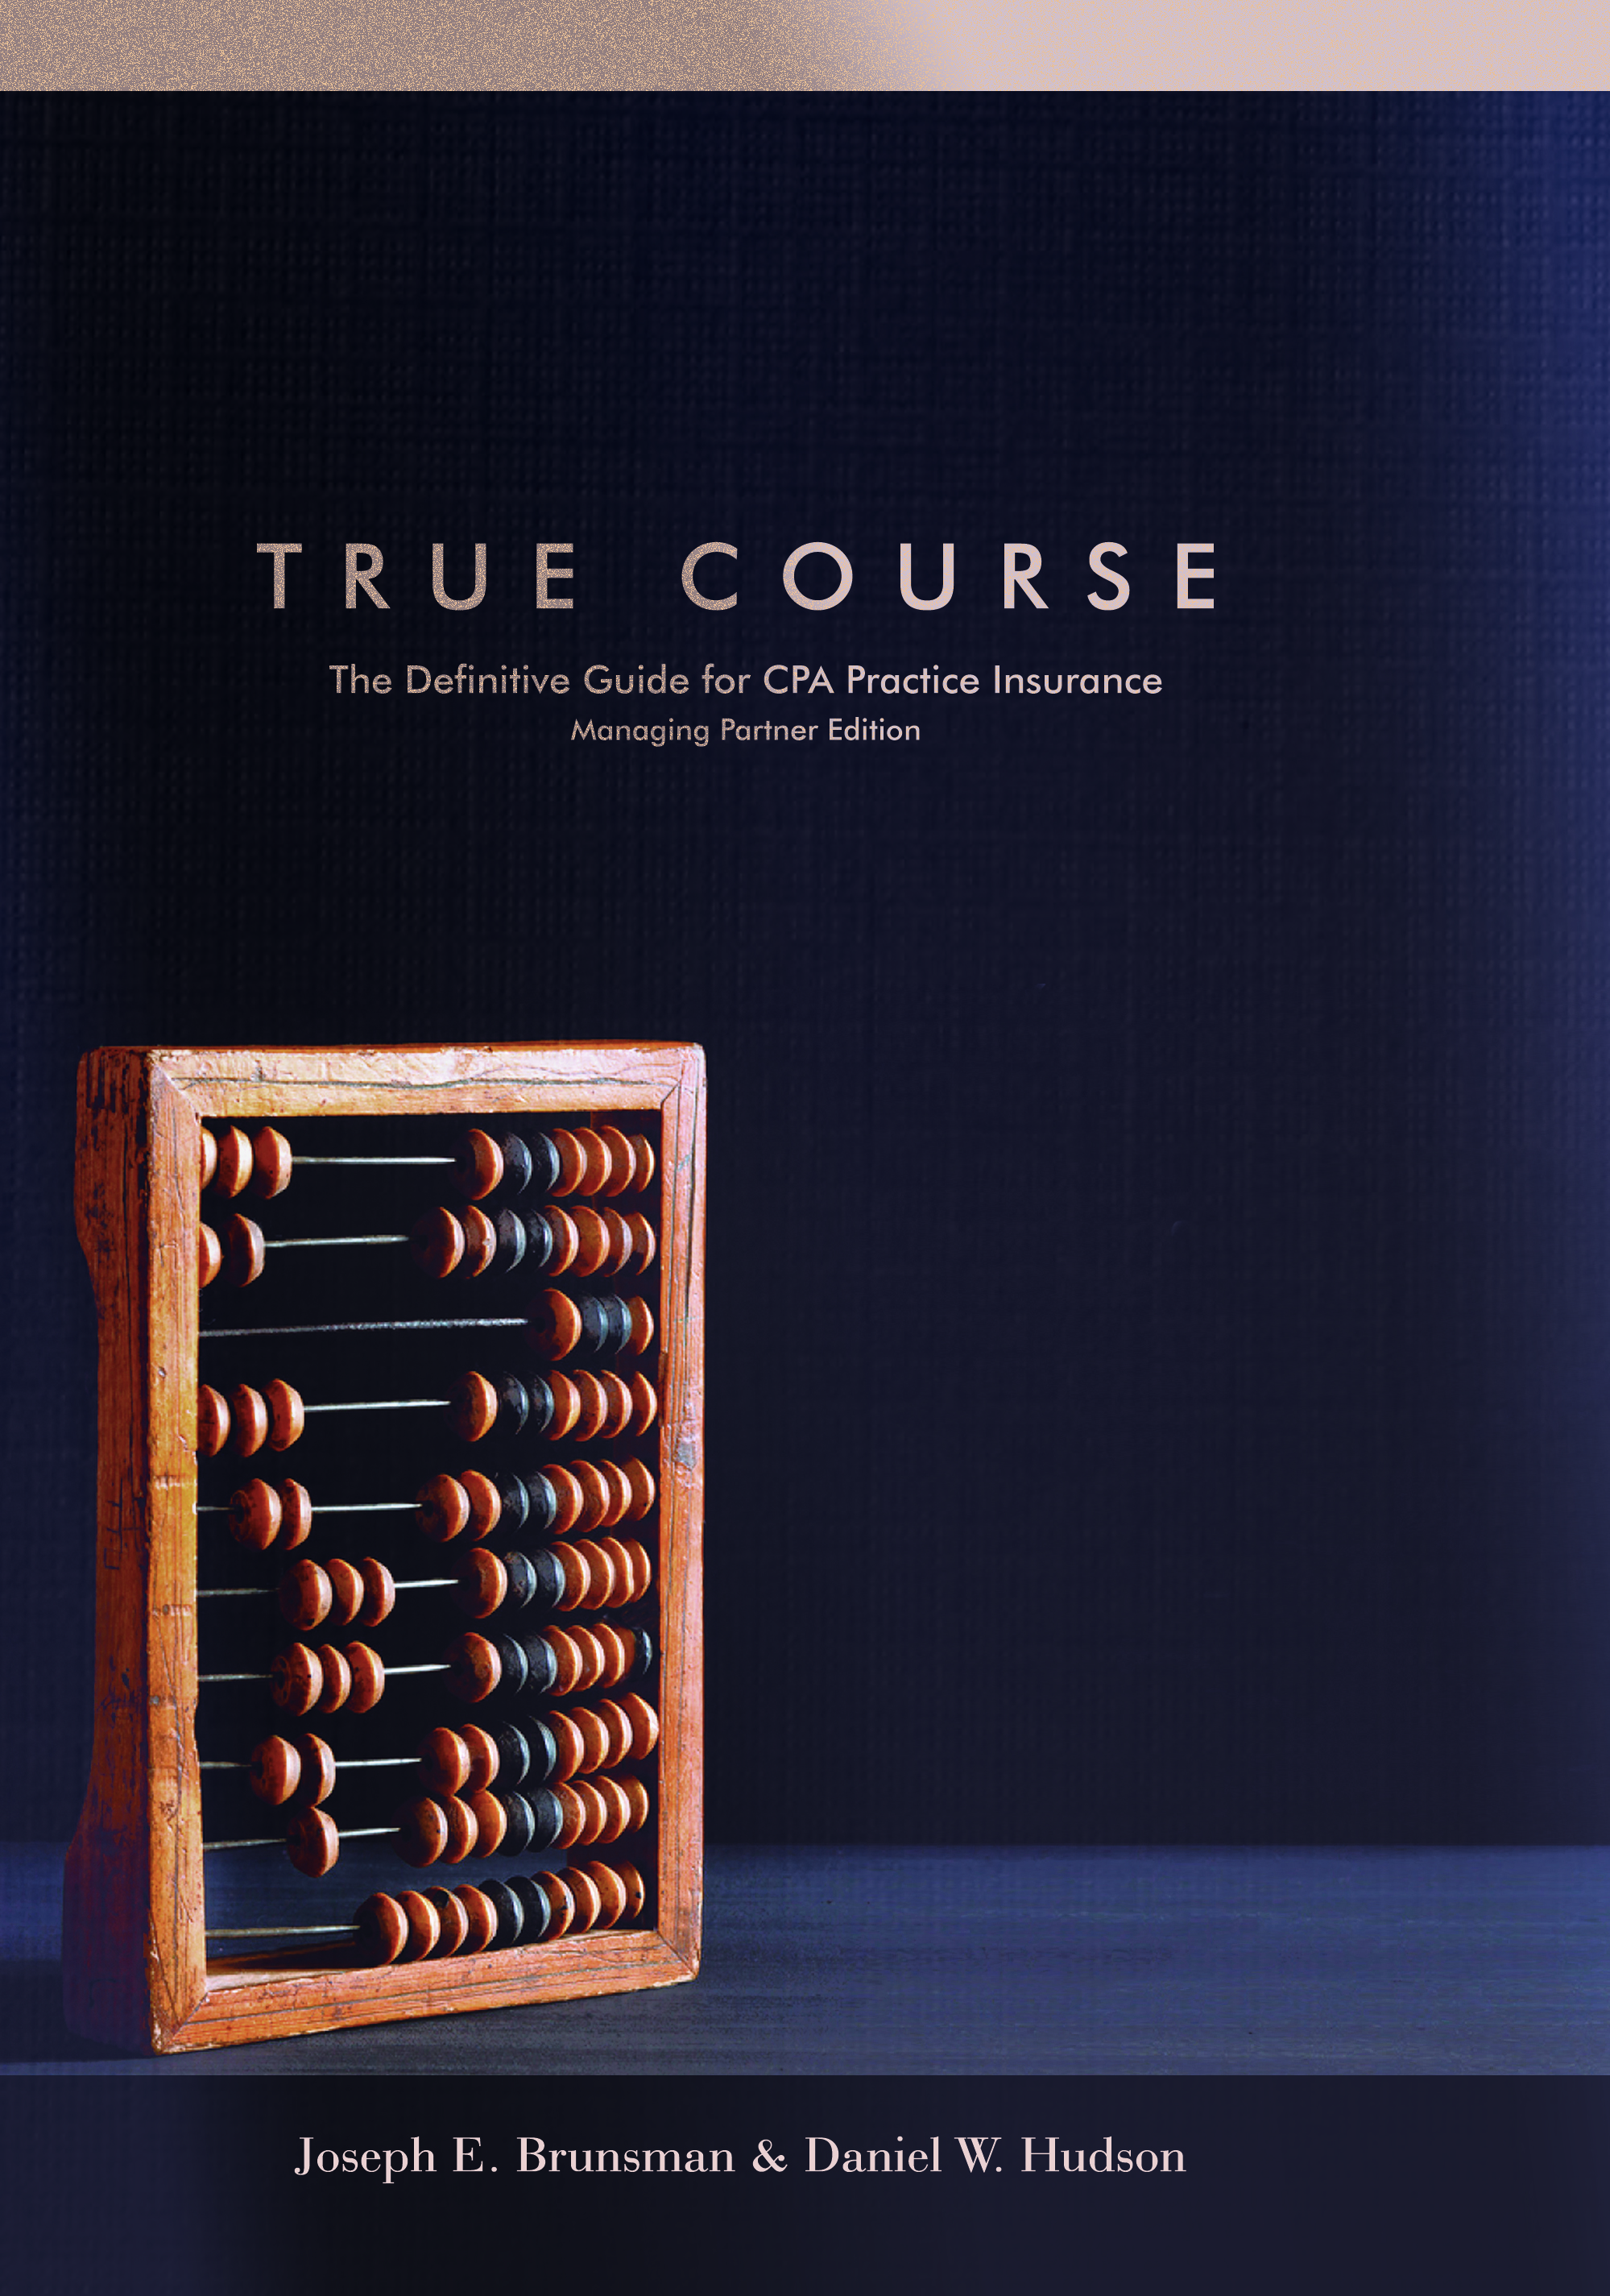 True Course_Cover Only.jpg